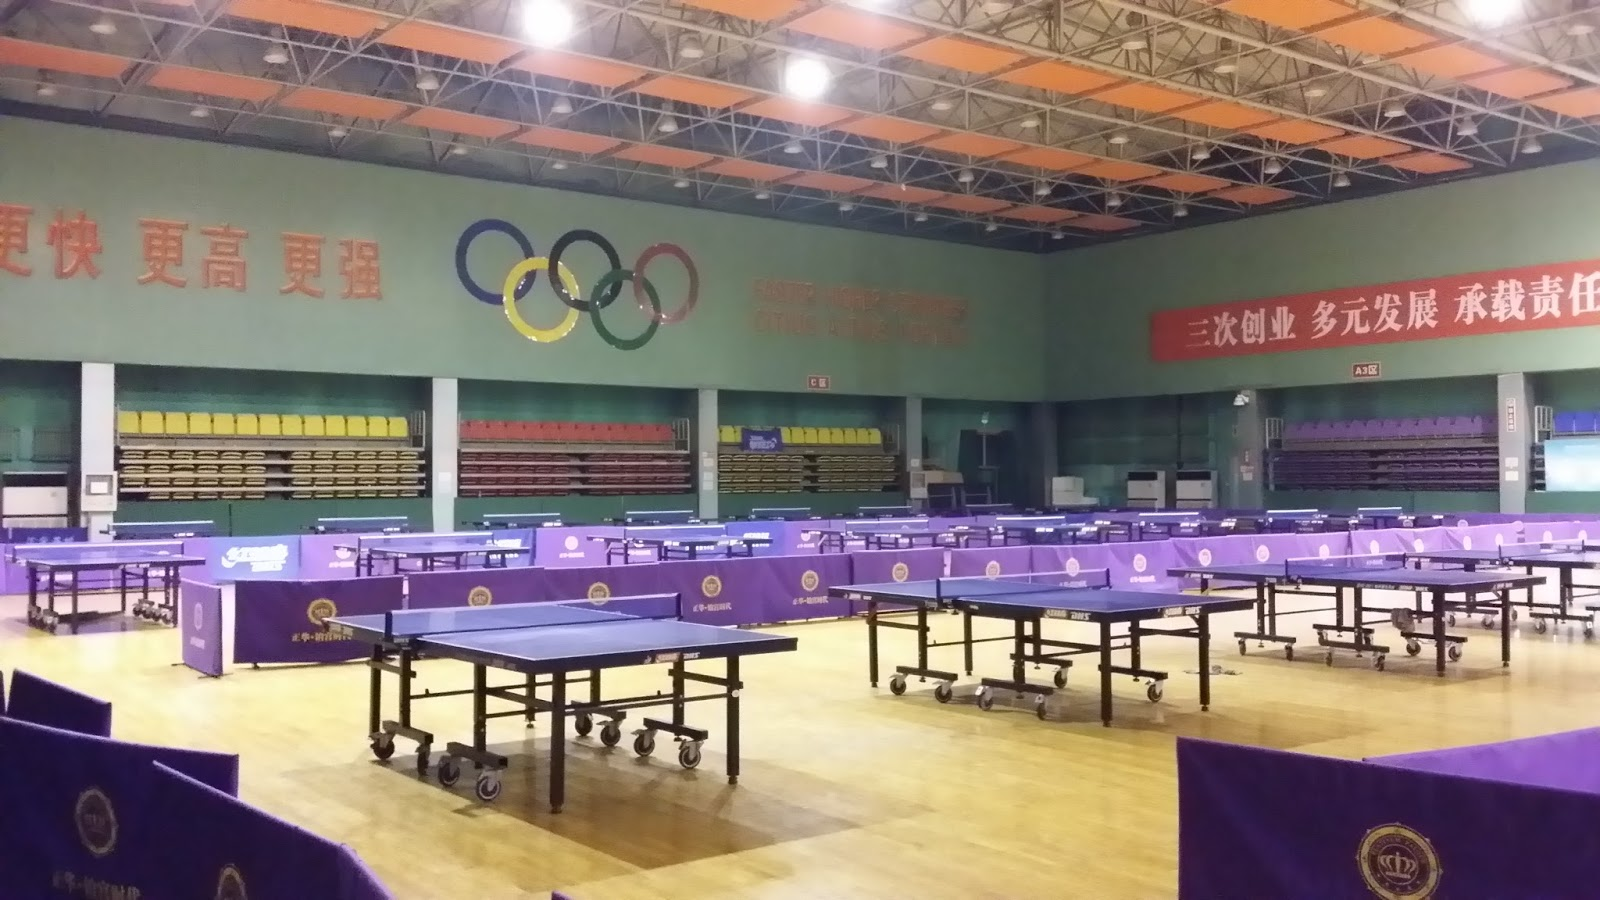 MHTableTennis Training In China Zhengding Blog - Training table restaurant